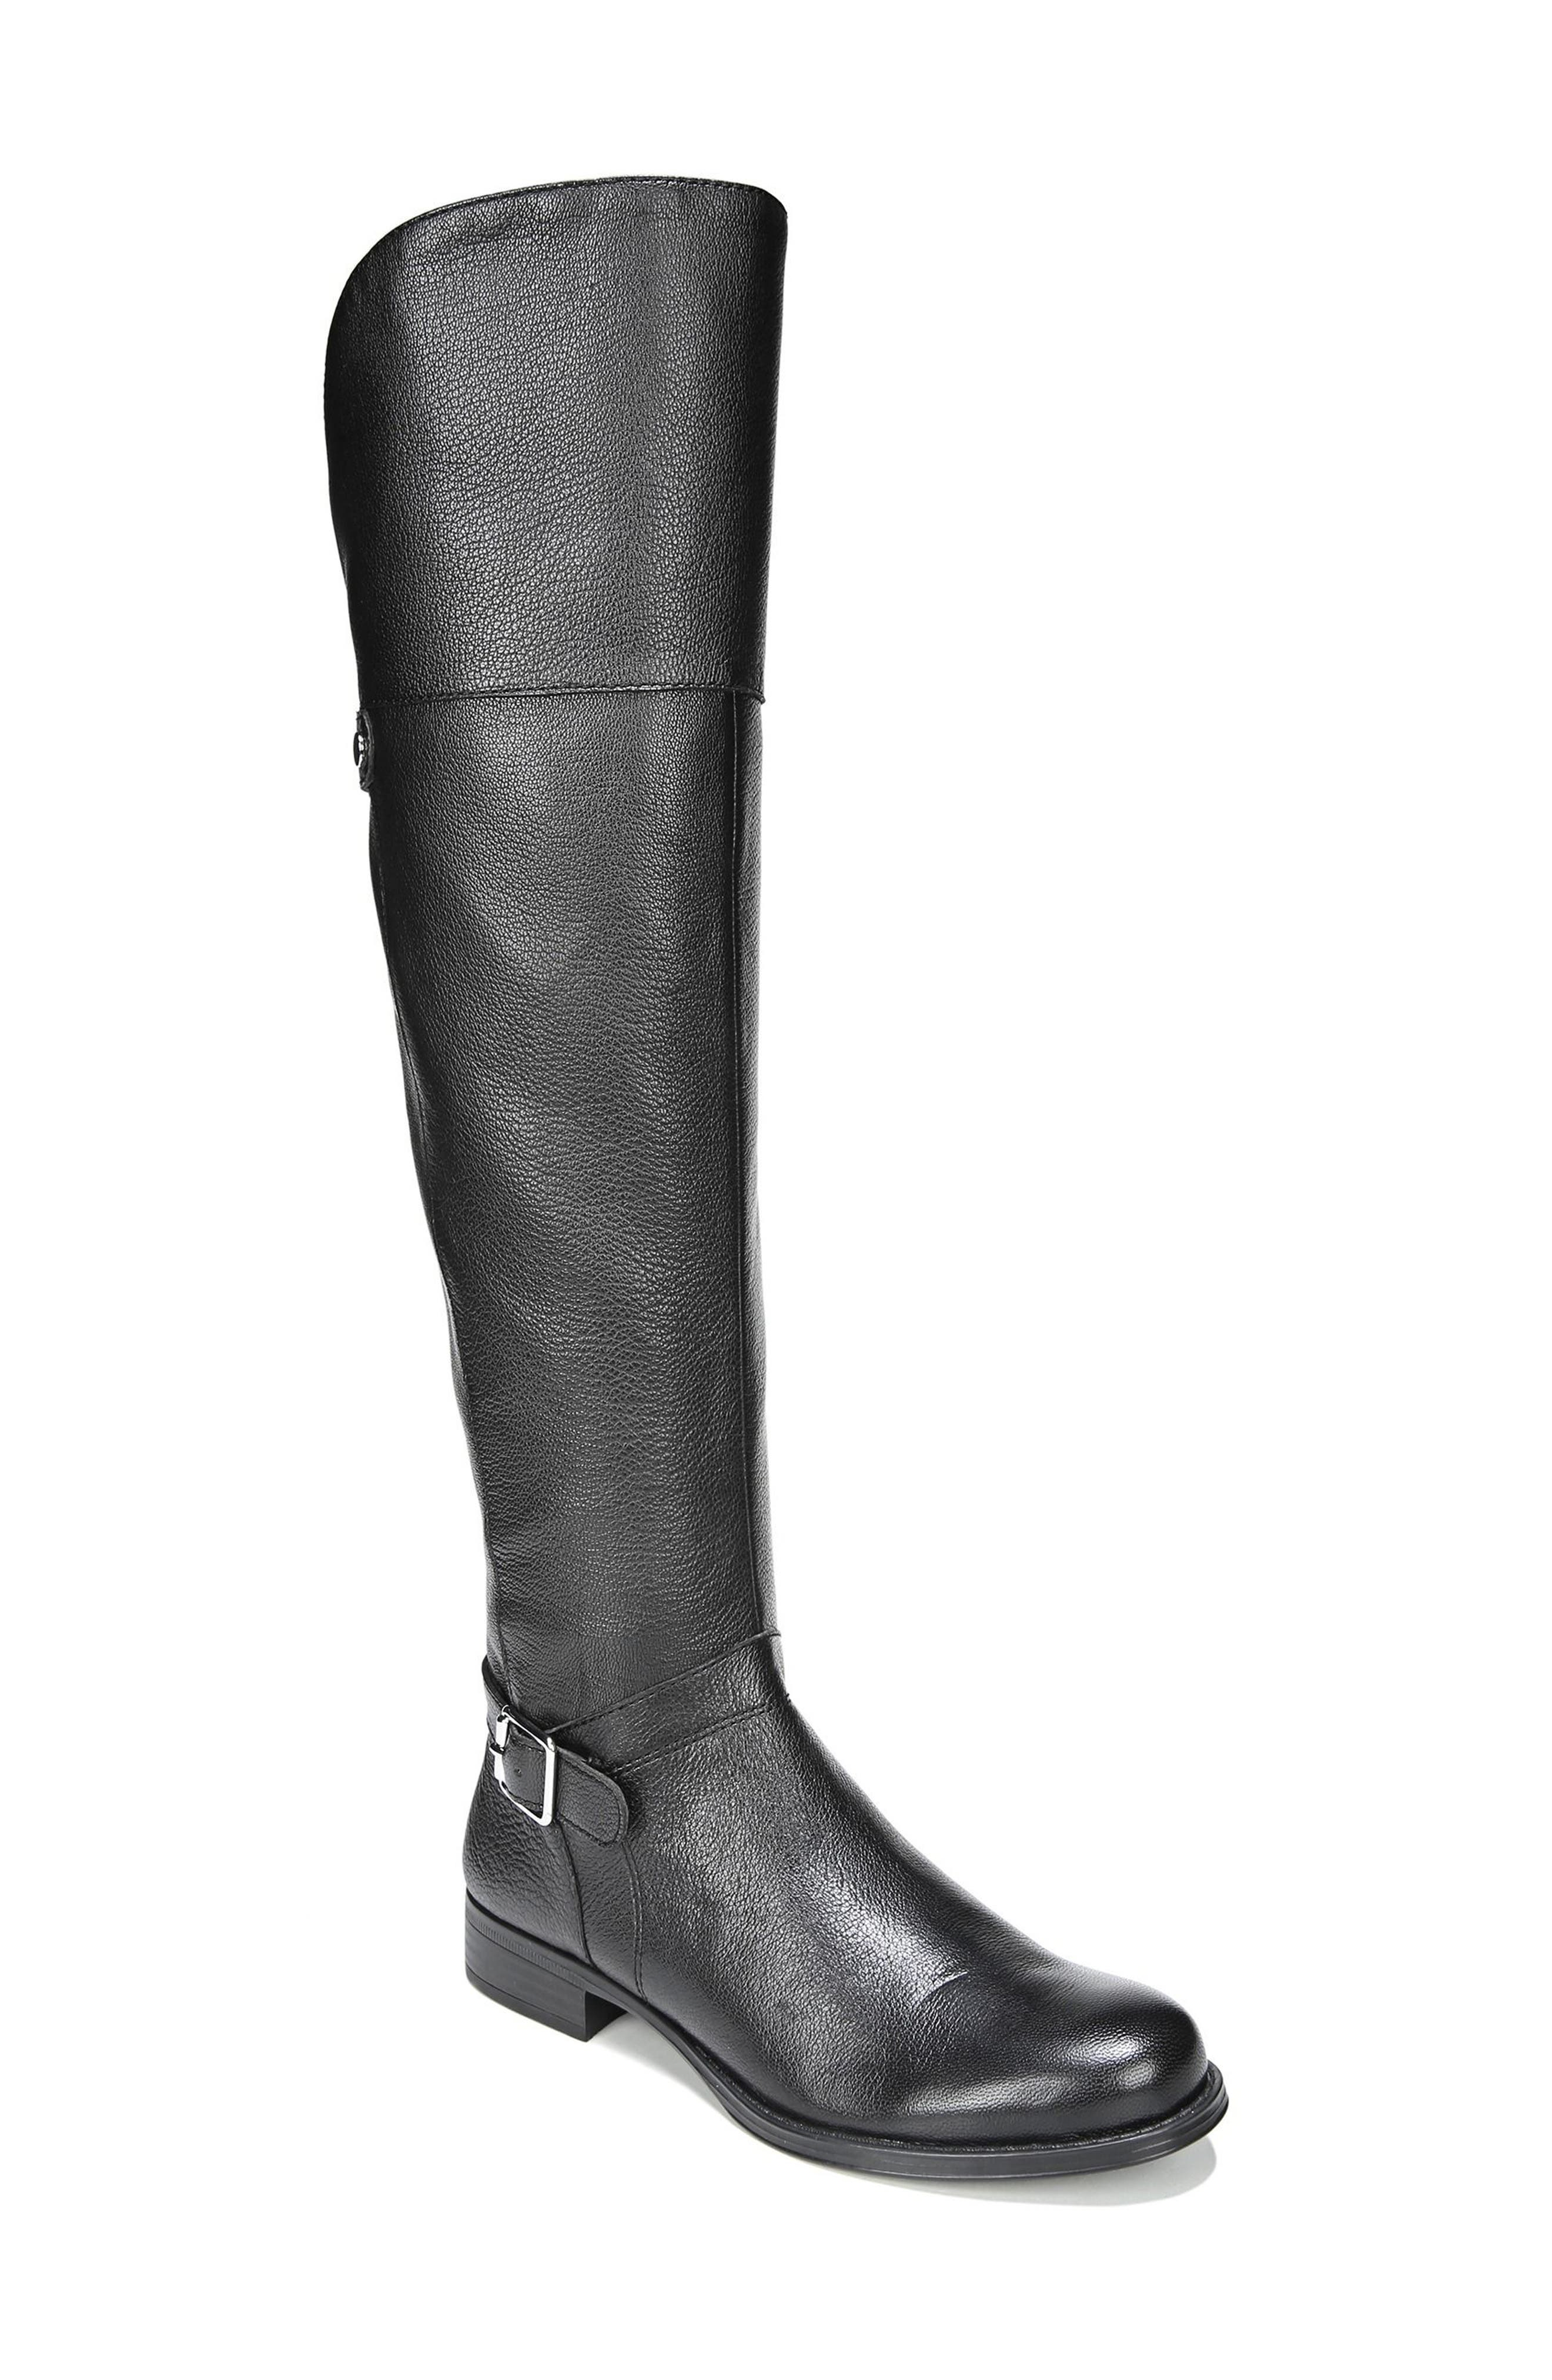 January Over the Knee High Boot,                         Main,                         color, 001